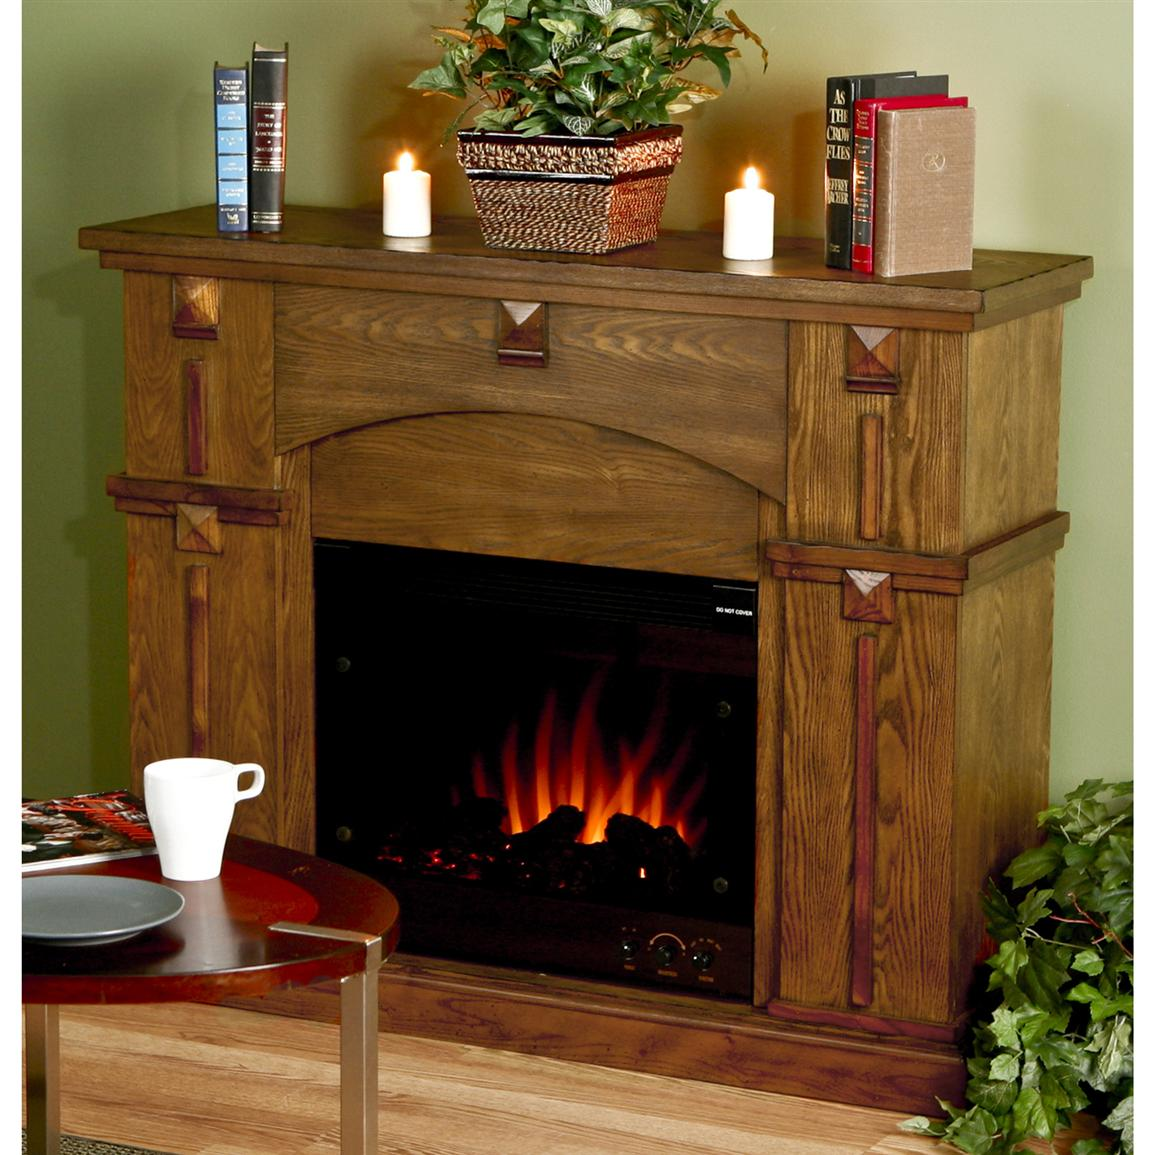 Southern Enterprises Inc Mission Corbel Fireplace With Electric Insert 145318 Fireplaces At